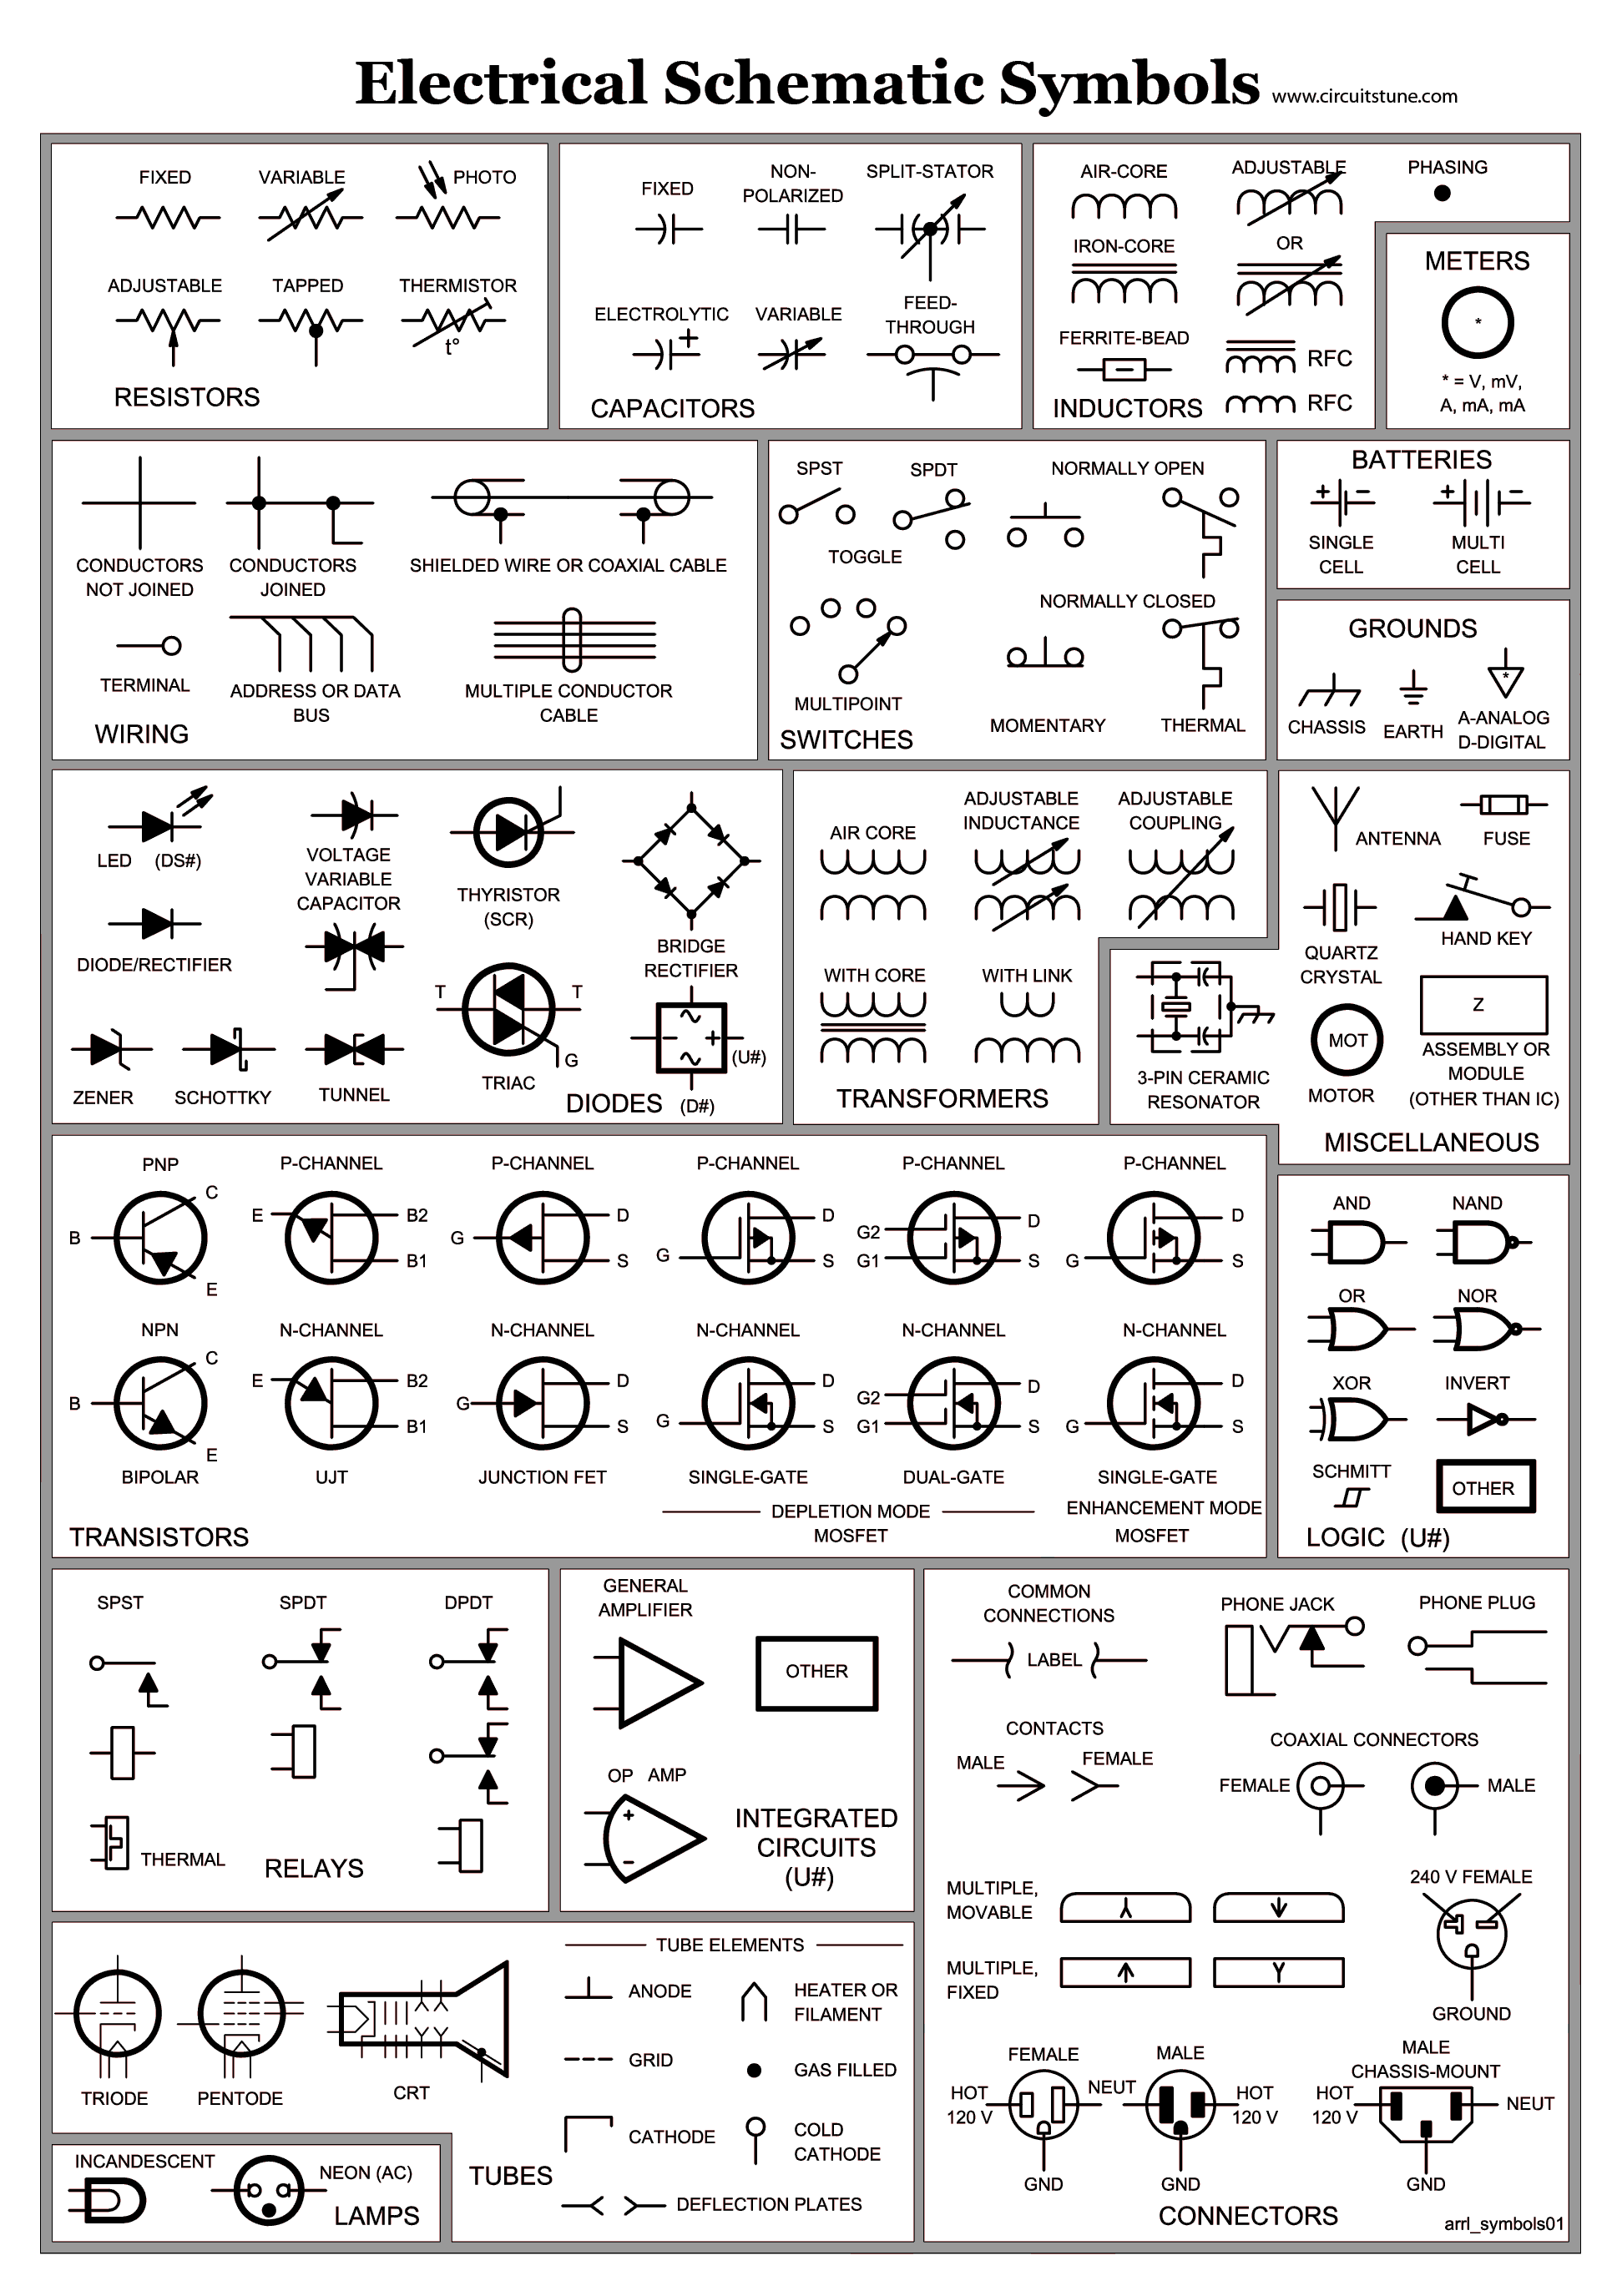 wiring diagram electronics electrical schematic symbols wire diagram symbols automotive electrical schematic symbols wire diagram symbols automotive wiring schematic